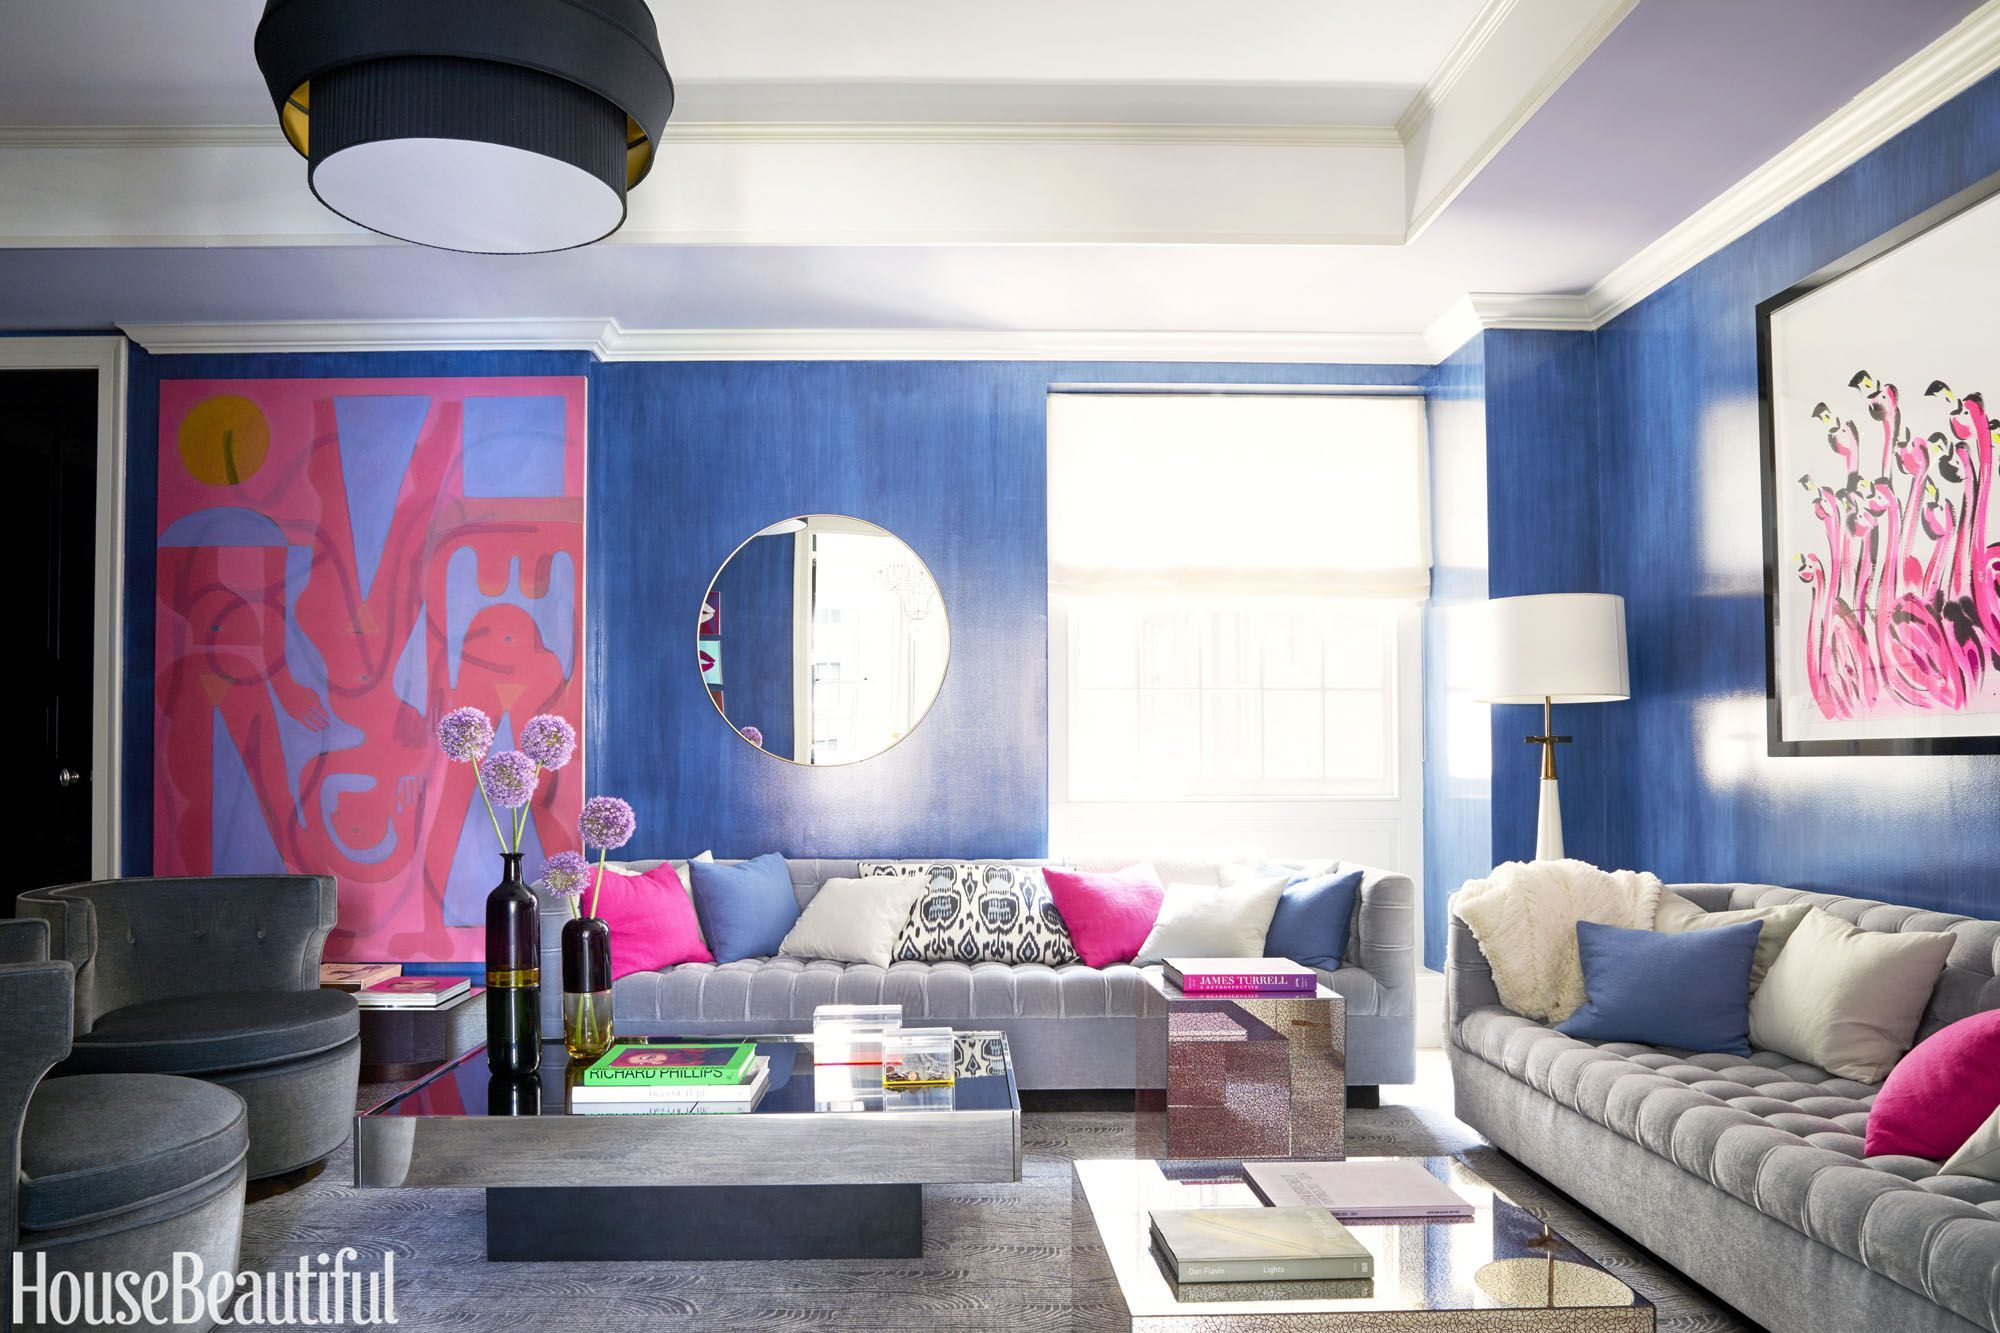 House Beautiful & 25 Best Living Room Color Ideas - Top Paint Colors for Living Rooms